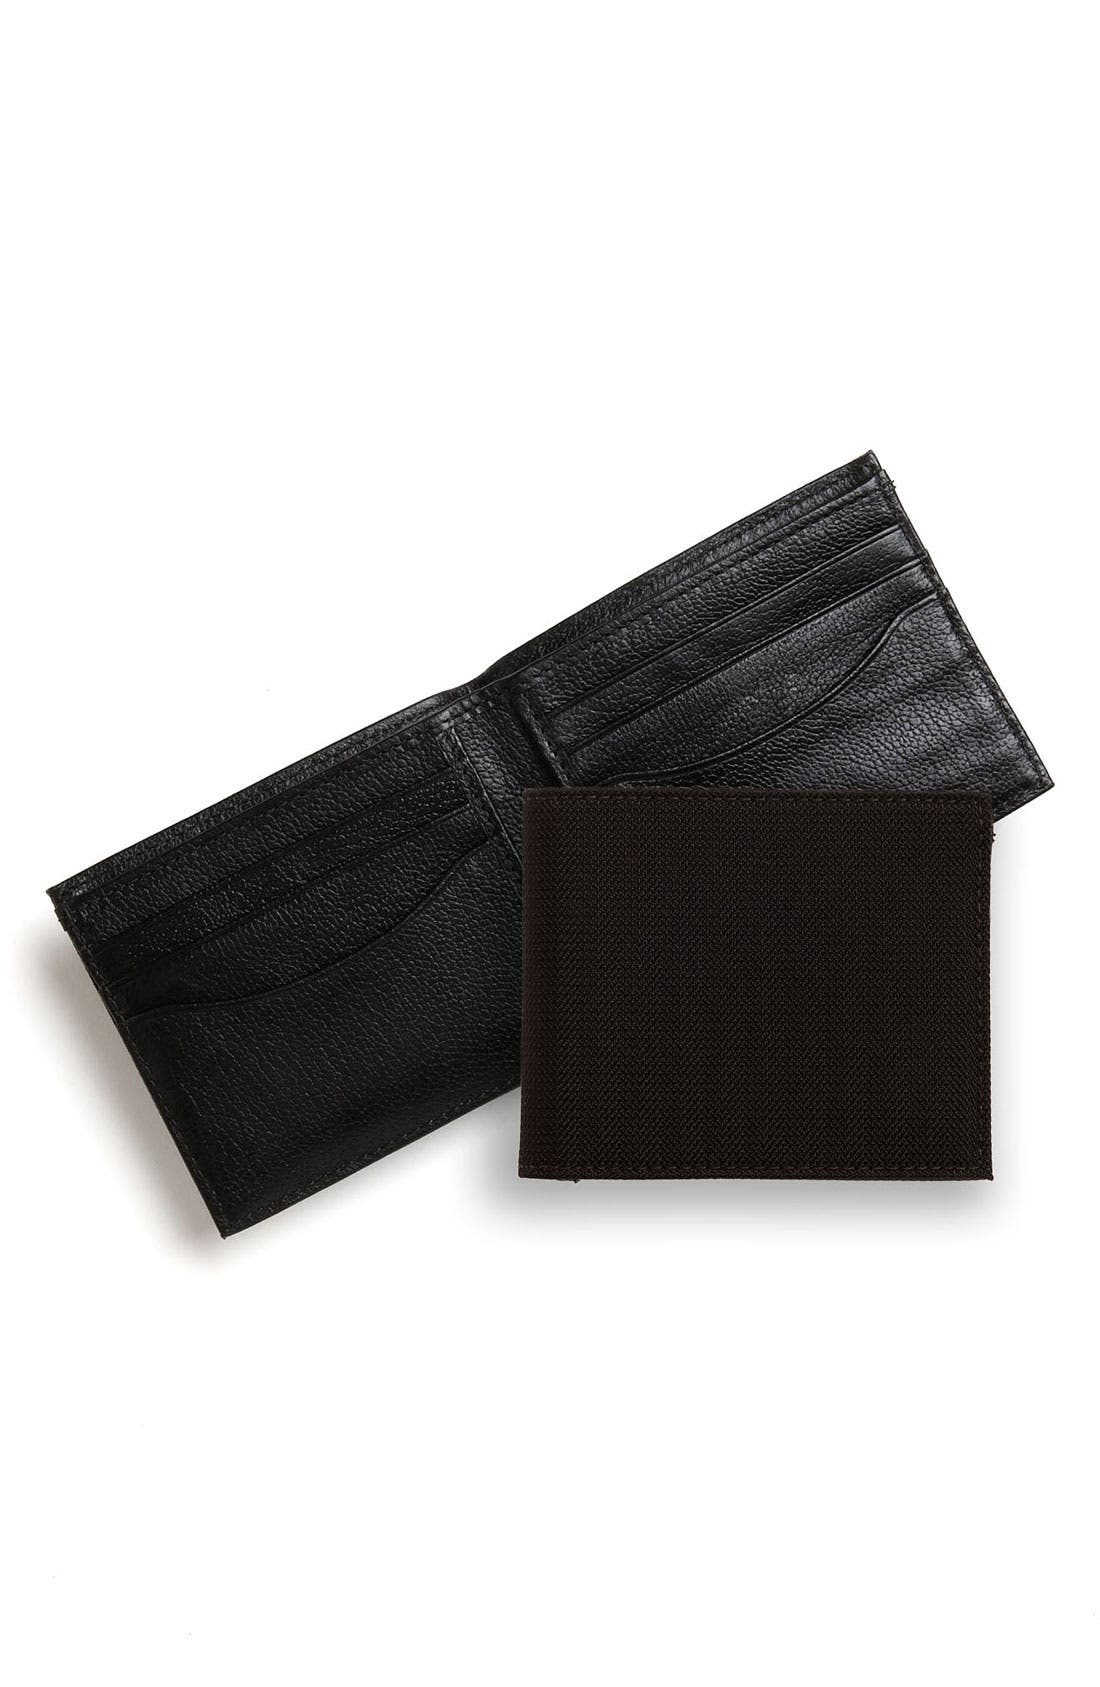 Alternate Image 1 Selected - Jack Spade Bifold Wallet